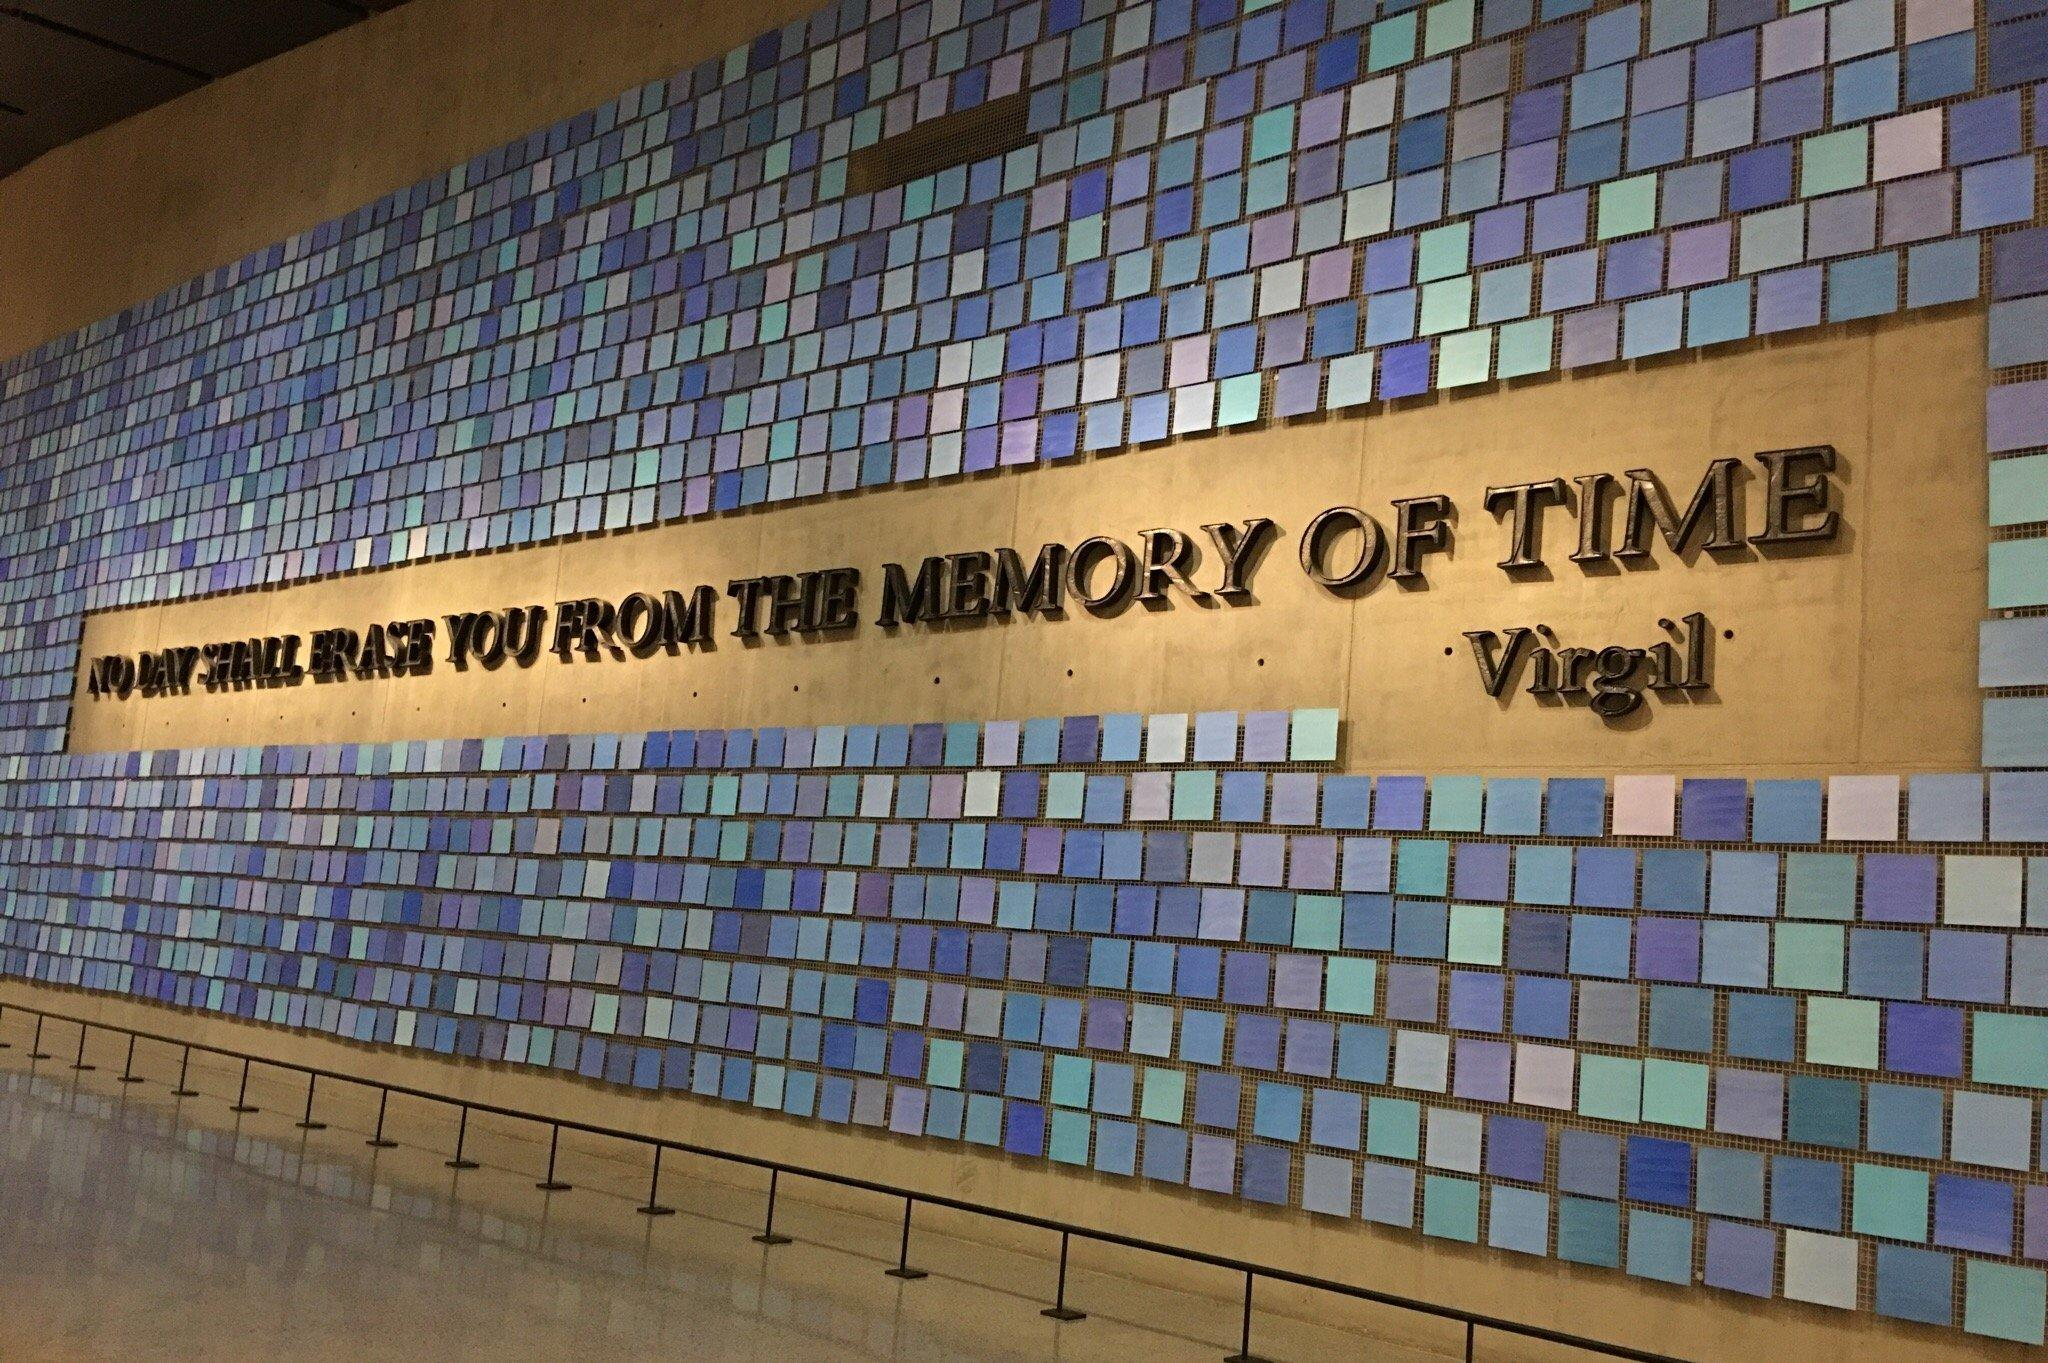 """This memorial and museum commemorates the lives of those who died in the 11 September terrorist attacks in the USA in 2001.The <a href=""""http://www.911memorial.org/museum"""" target=""""_blank"""">National 9/11 Museum</a> tells the story of 9/11 using a combination of technology, archives and artifacts."""